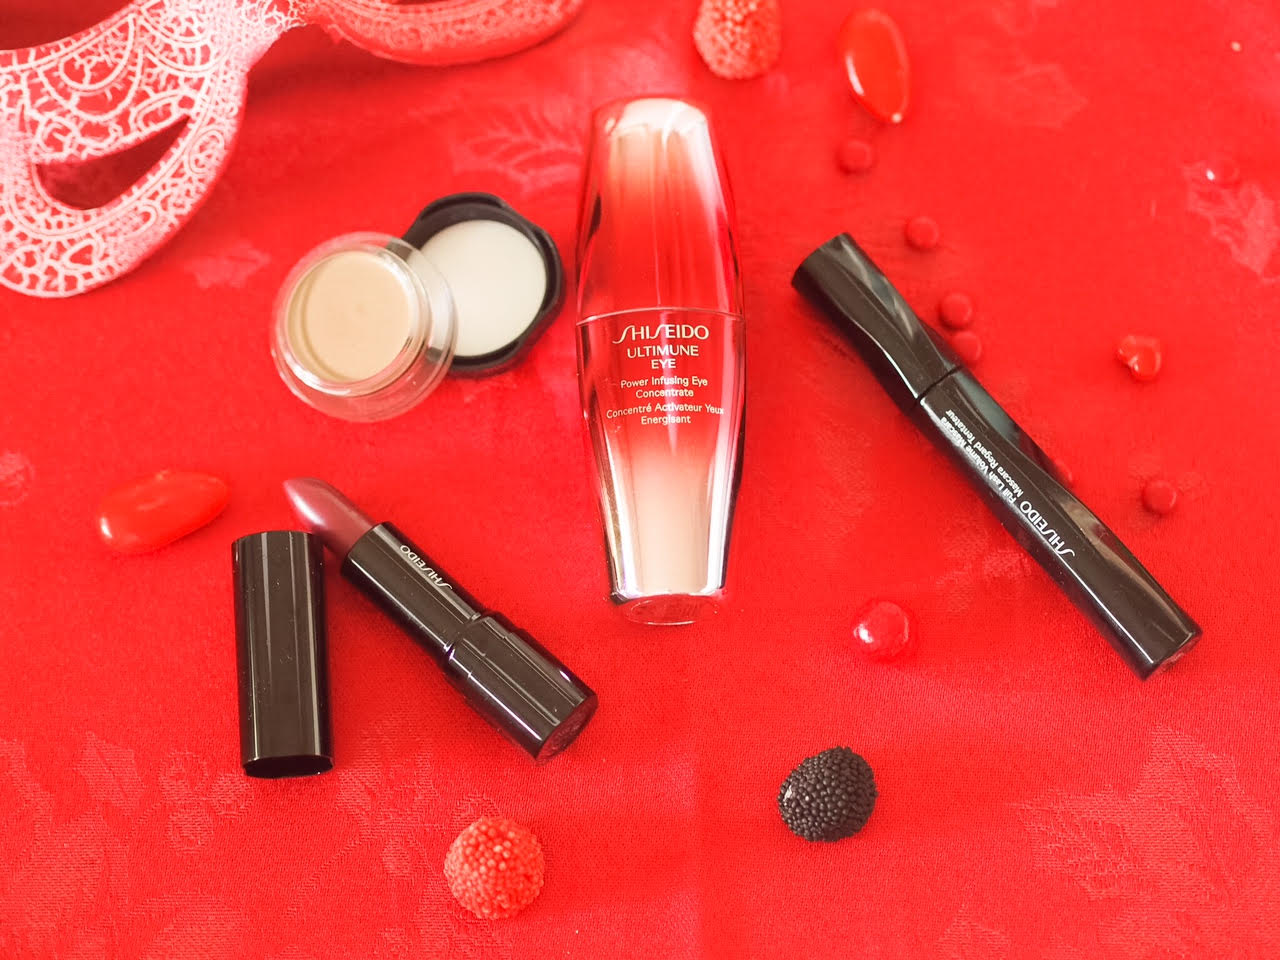 Shiseido Ultimune eye power infusing